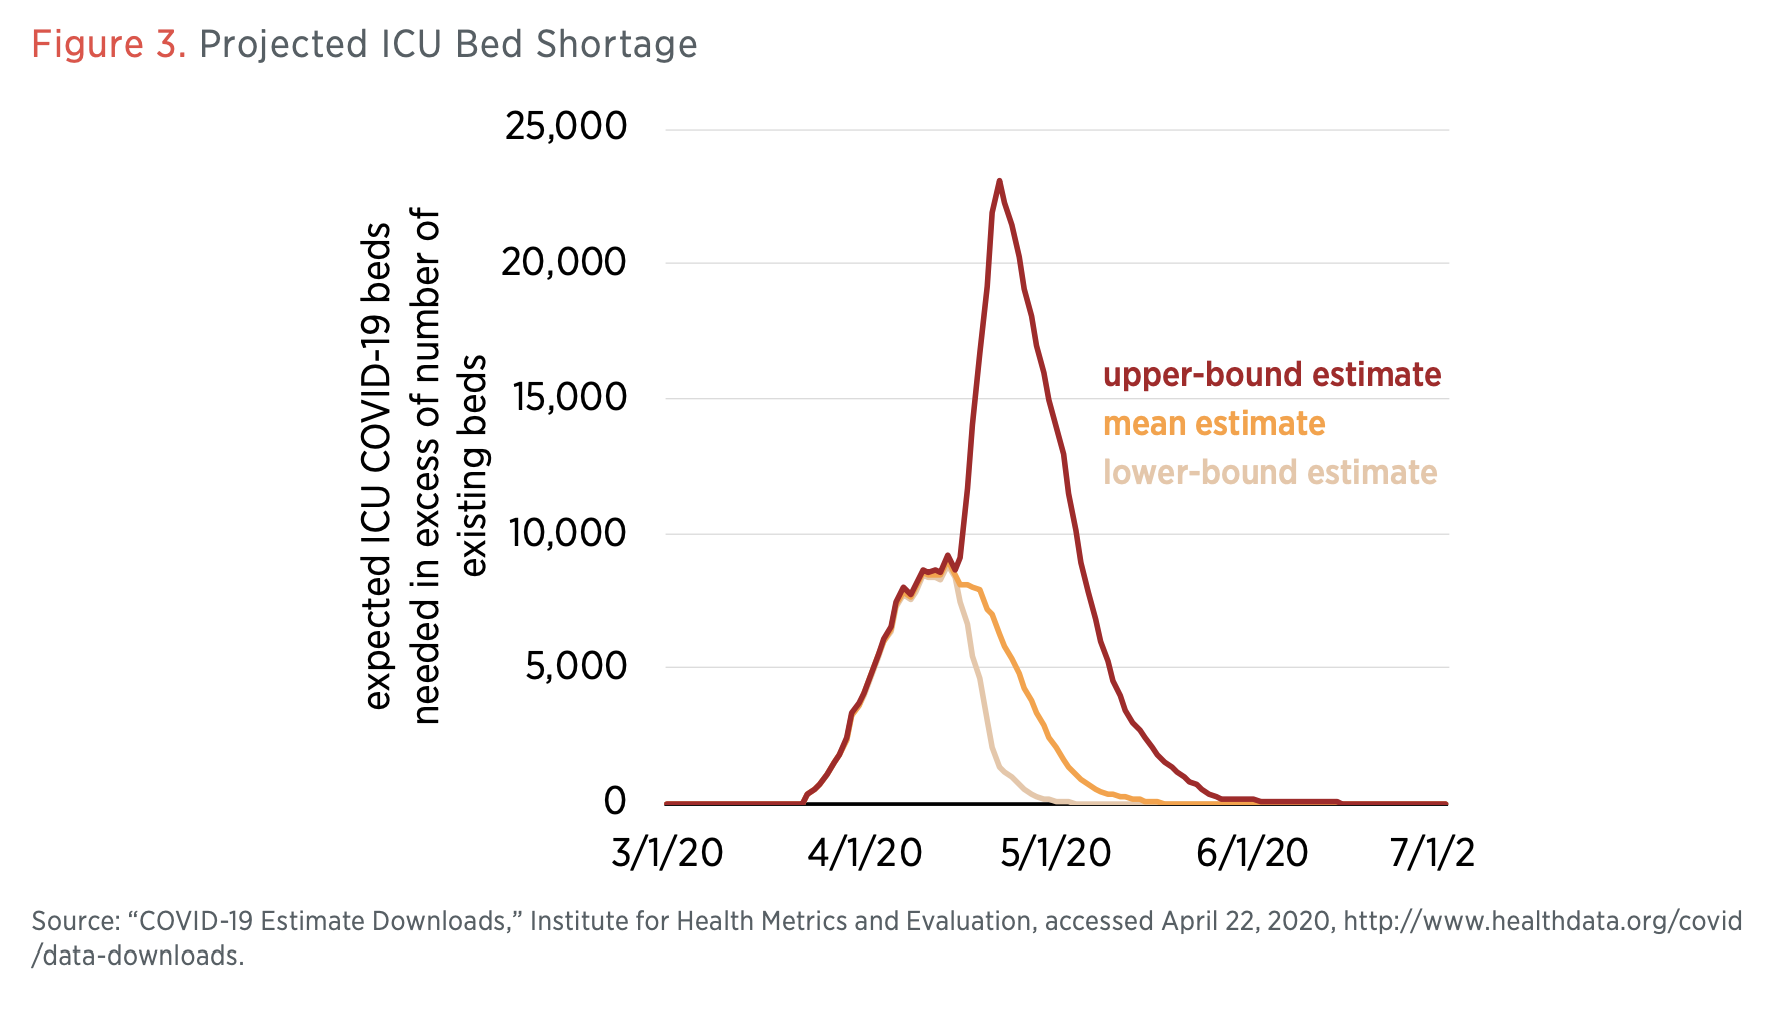 Figure 3. Projected ICU Bed Shortage